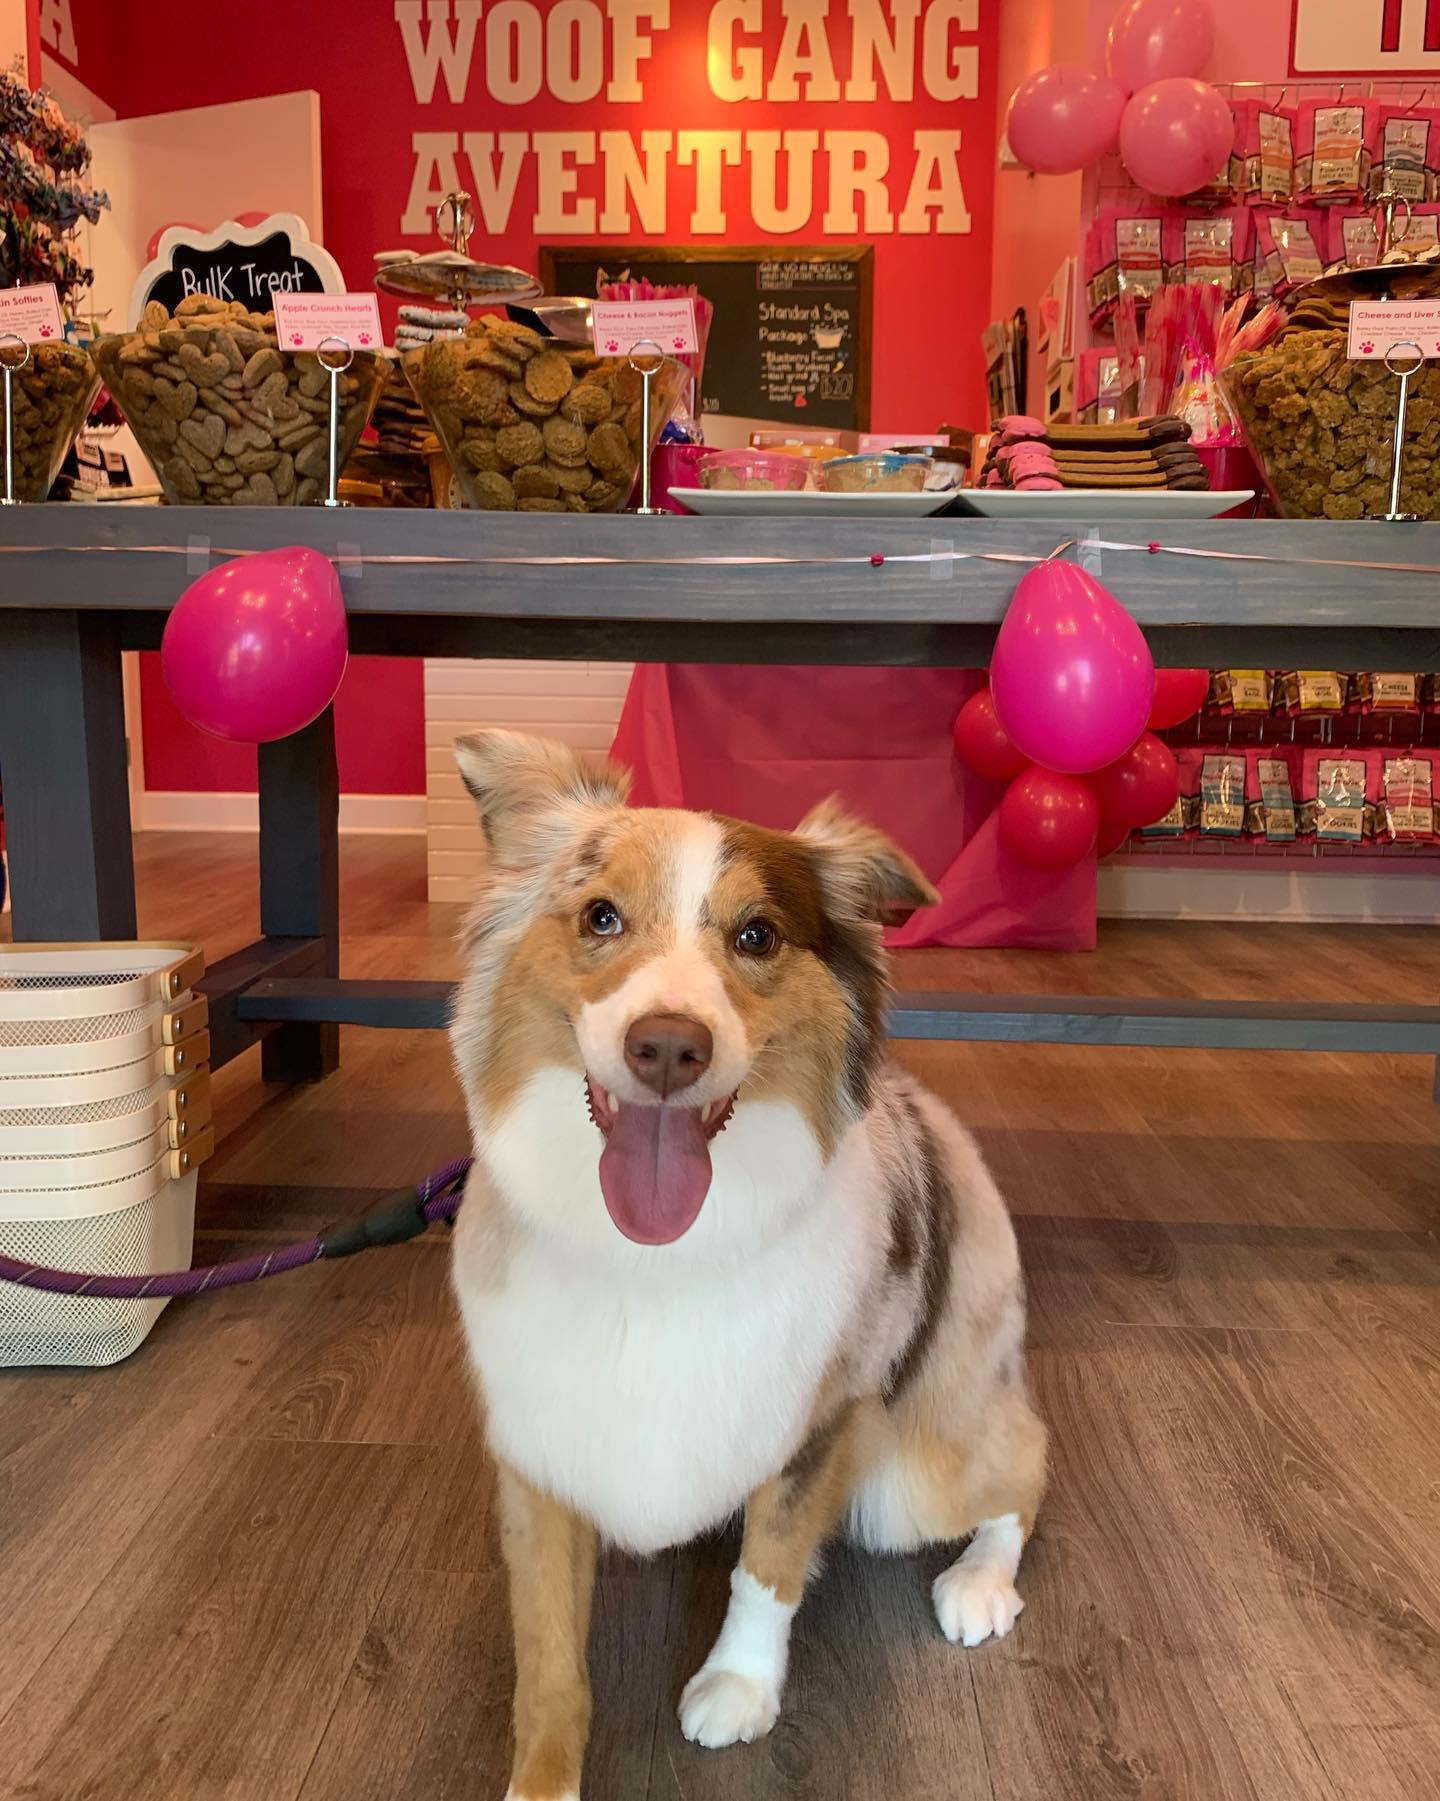 Do you need to travel products for your pets? Woof Gang Bakery & Grooming Aventura will deliver everything from food and supplements to treats, clothing, bedding and travel gear to keep your animals happy and healthy while on the journey.